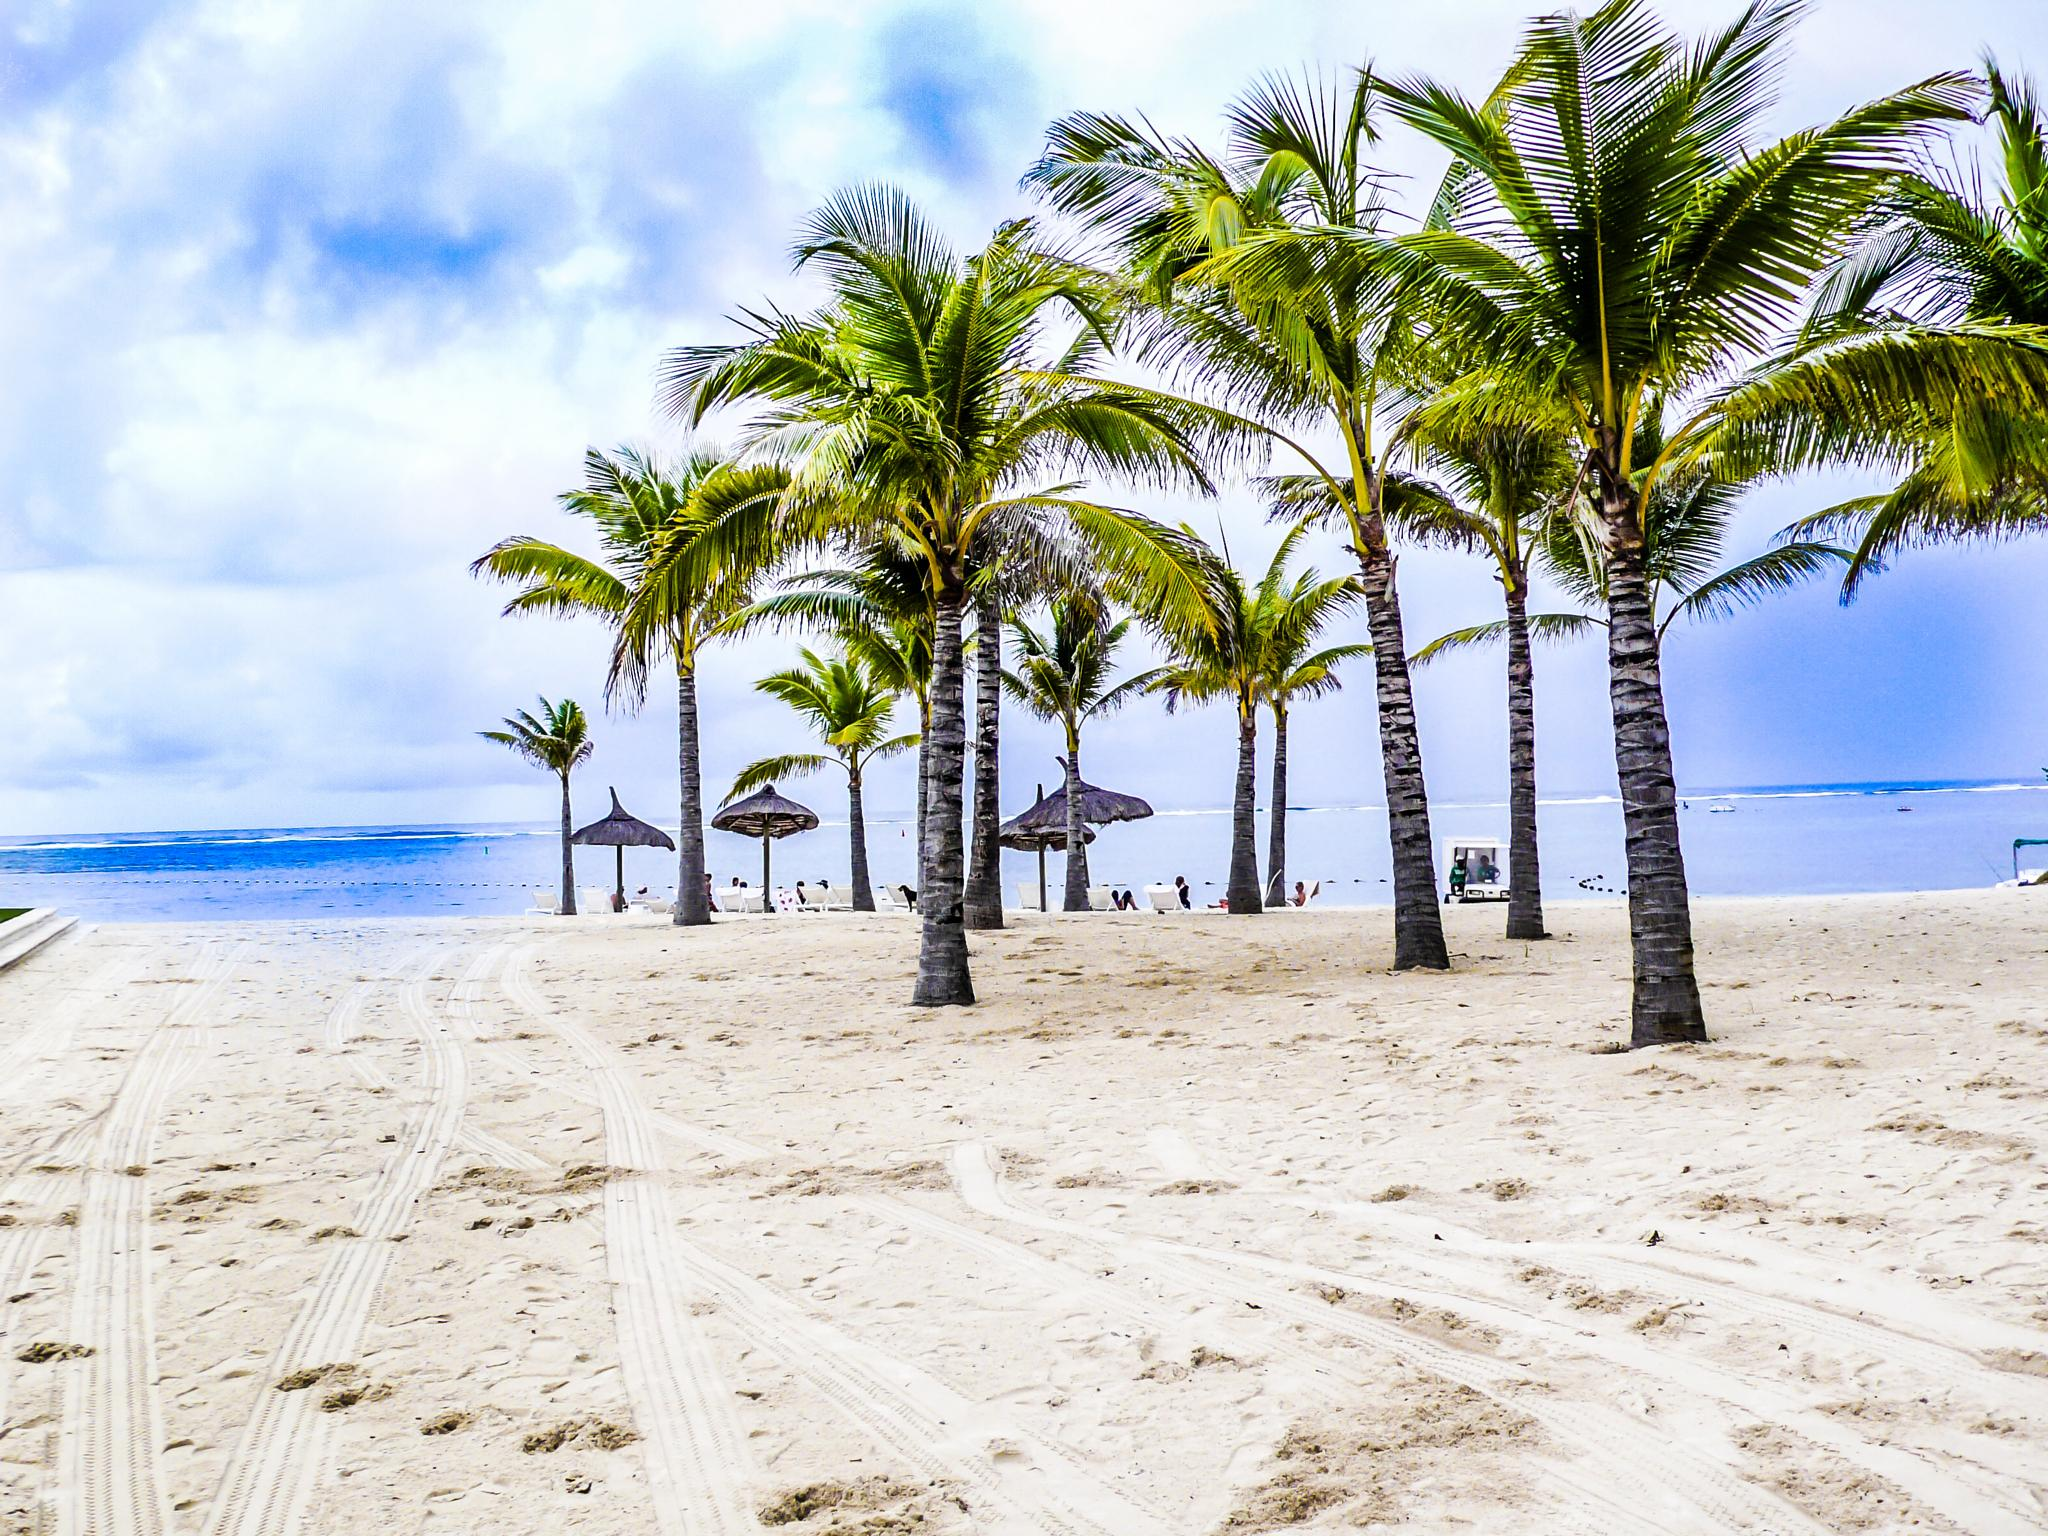 Mauritius beach by JanetFernandes